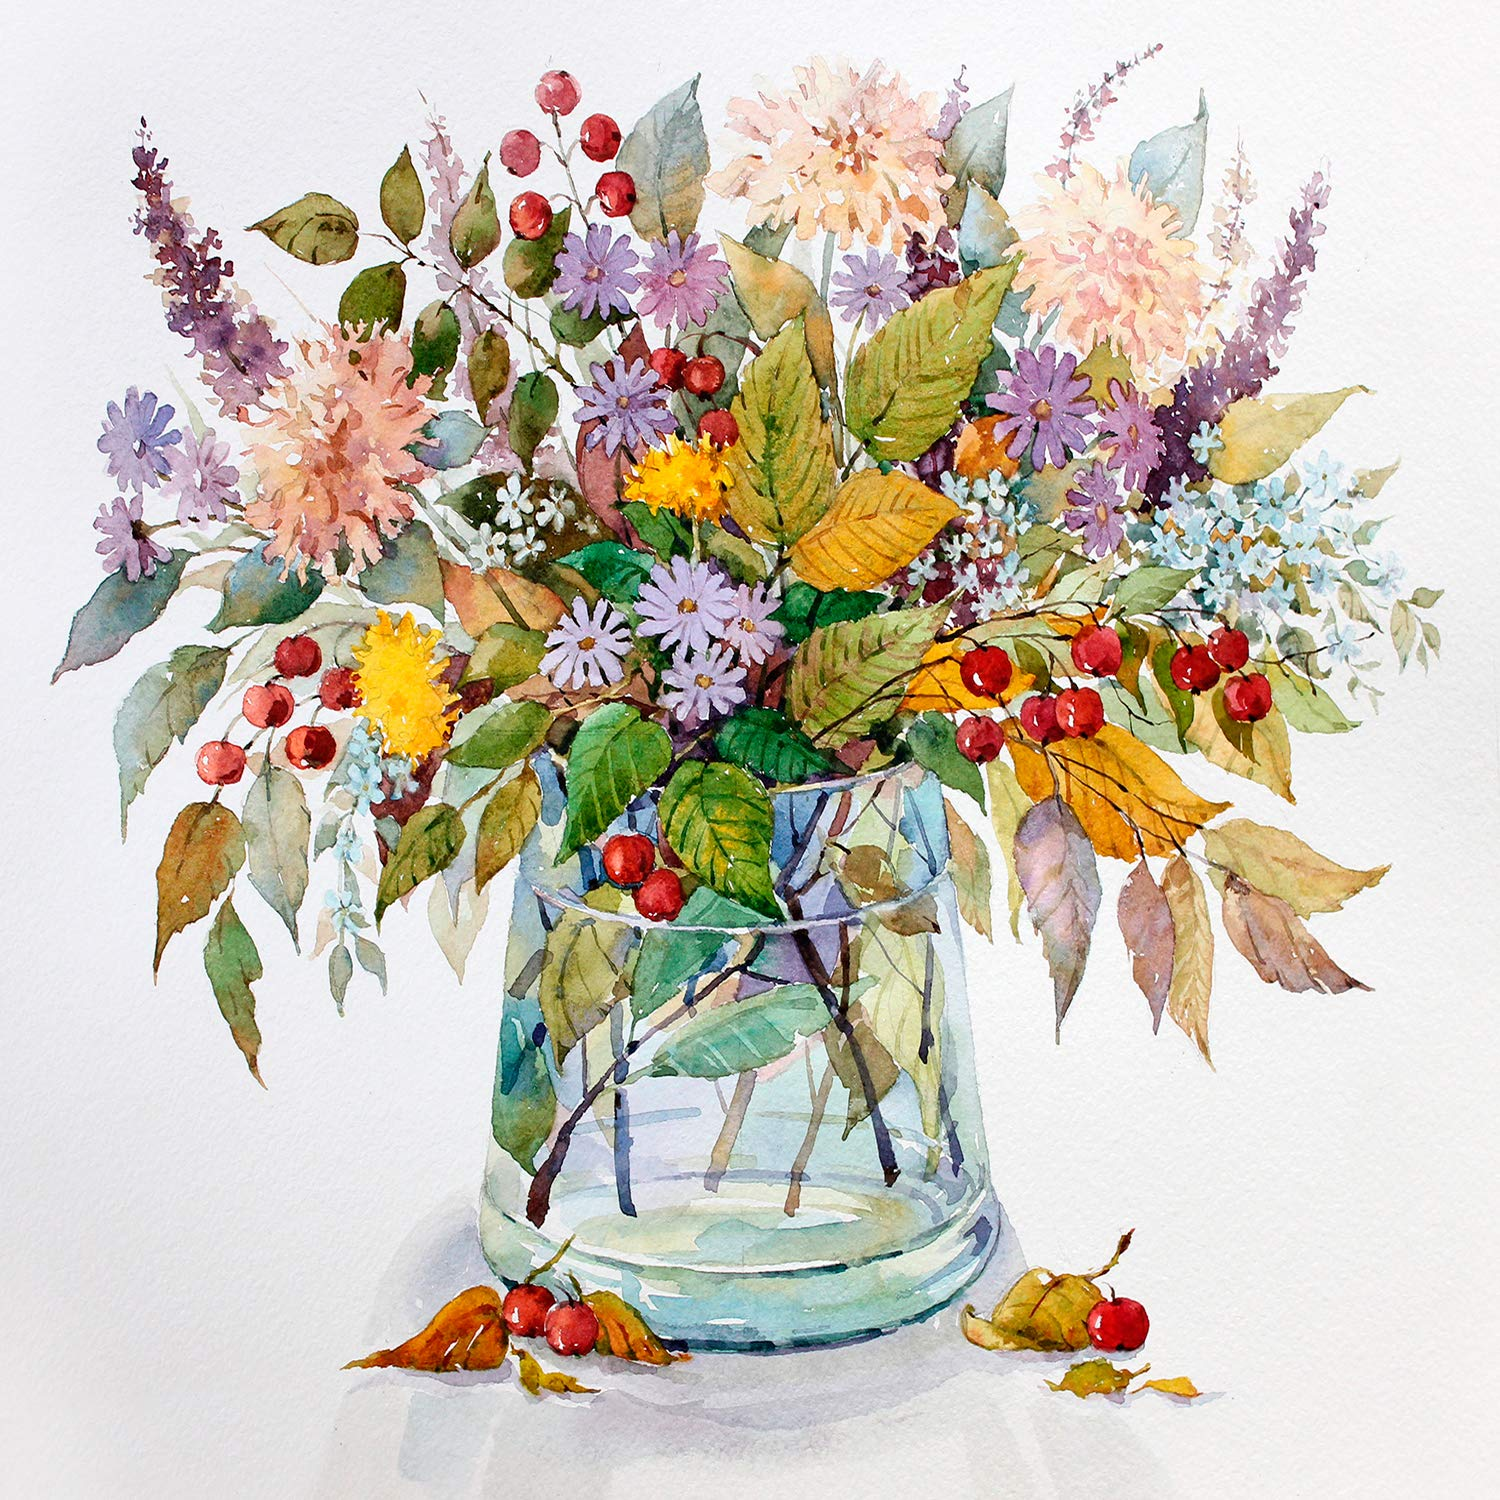 [Wooden Framed] DIY Painting, Paint by Number Kits for Adults - Flowers: Autumn Bouquet - Includes Brushes, Paints and Numbered Canvas - 16x20 Inch - Great for Kids and Adults - by Tsvetnoy by Tsvetnoy - the world of bright ideas